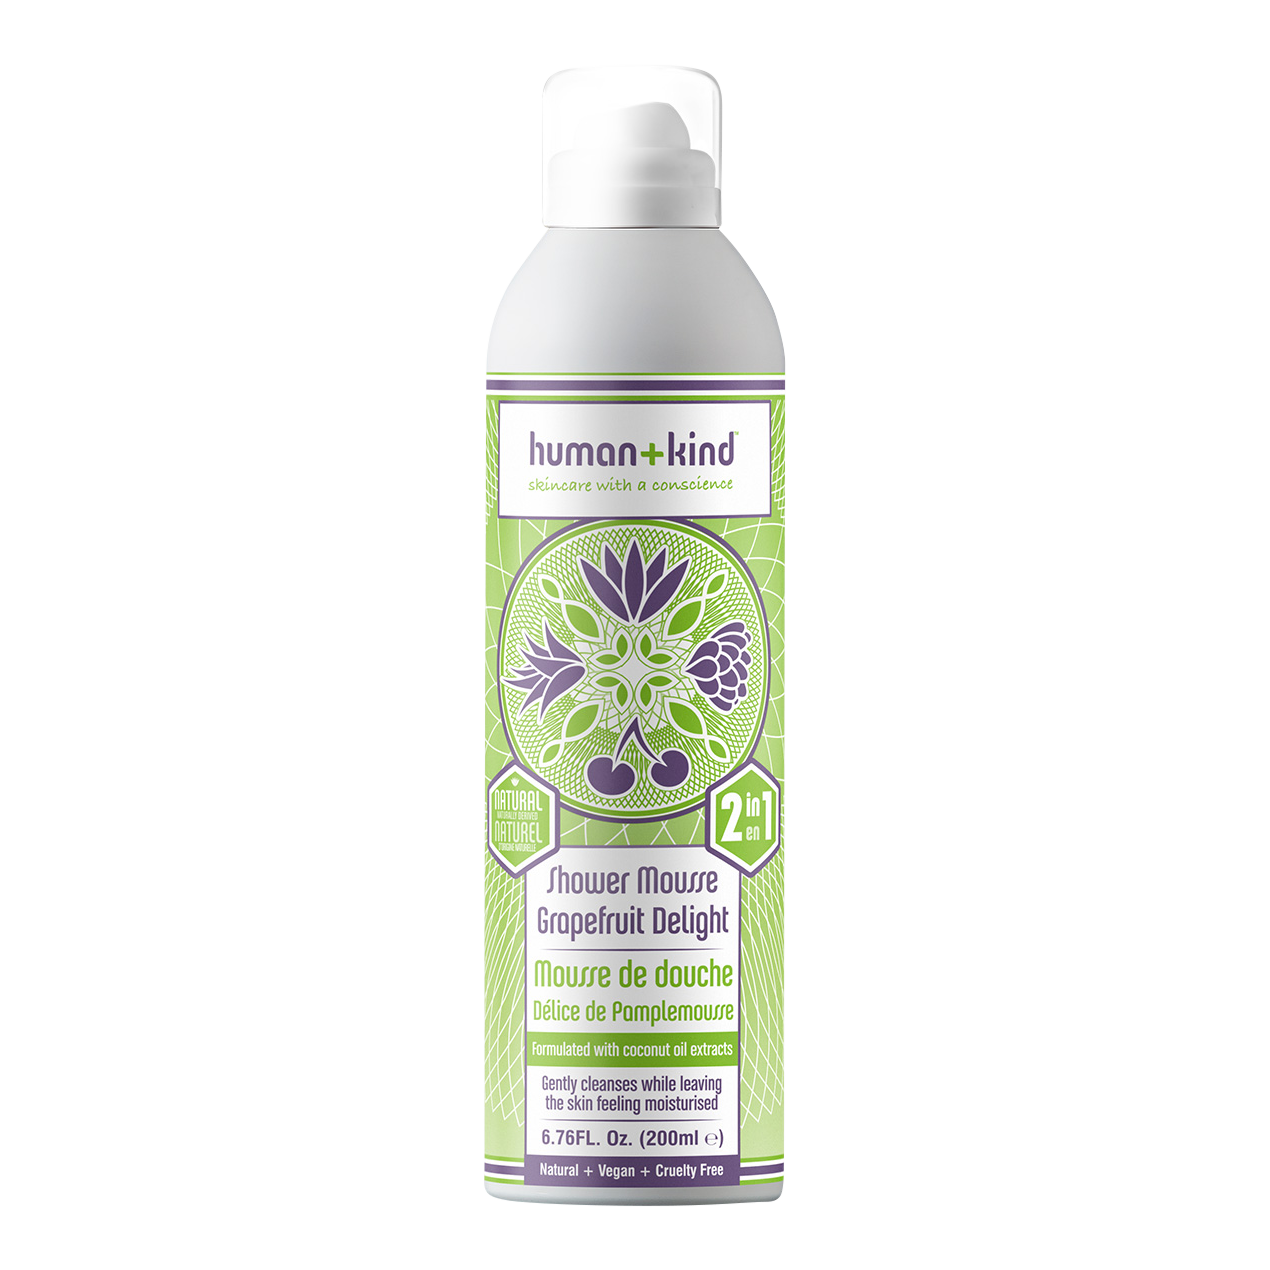 Human + Kind Shower Mousse Grapefruit Delight